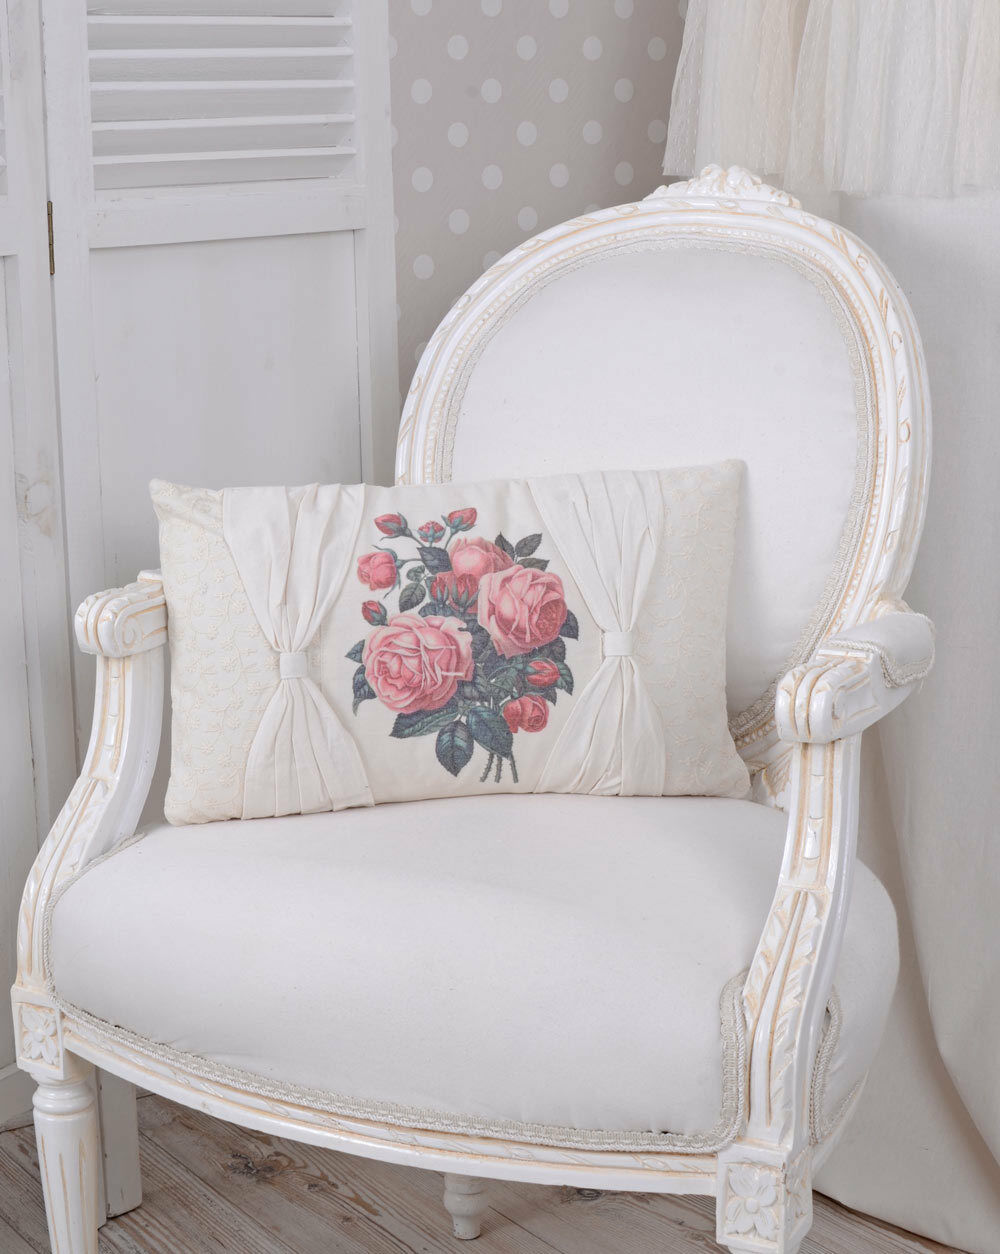 zierkissen weiss kissen shabby chic rosen sofakissen mit. Black Bedroom Furniture Sets. Home Design Ideas